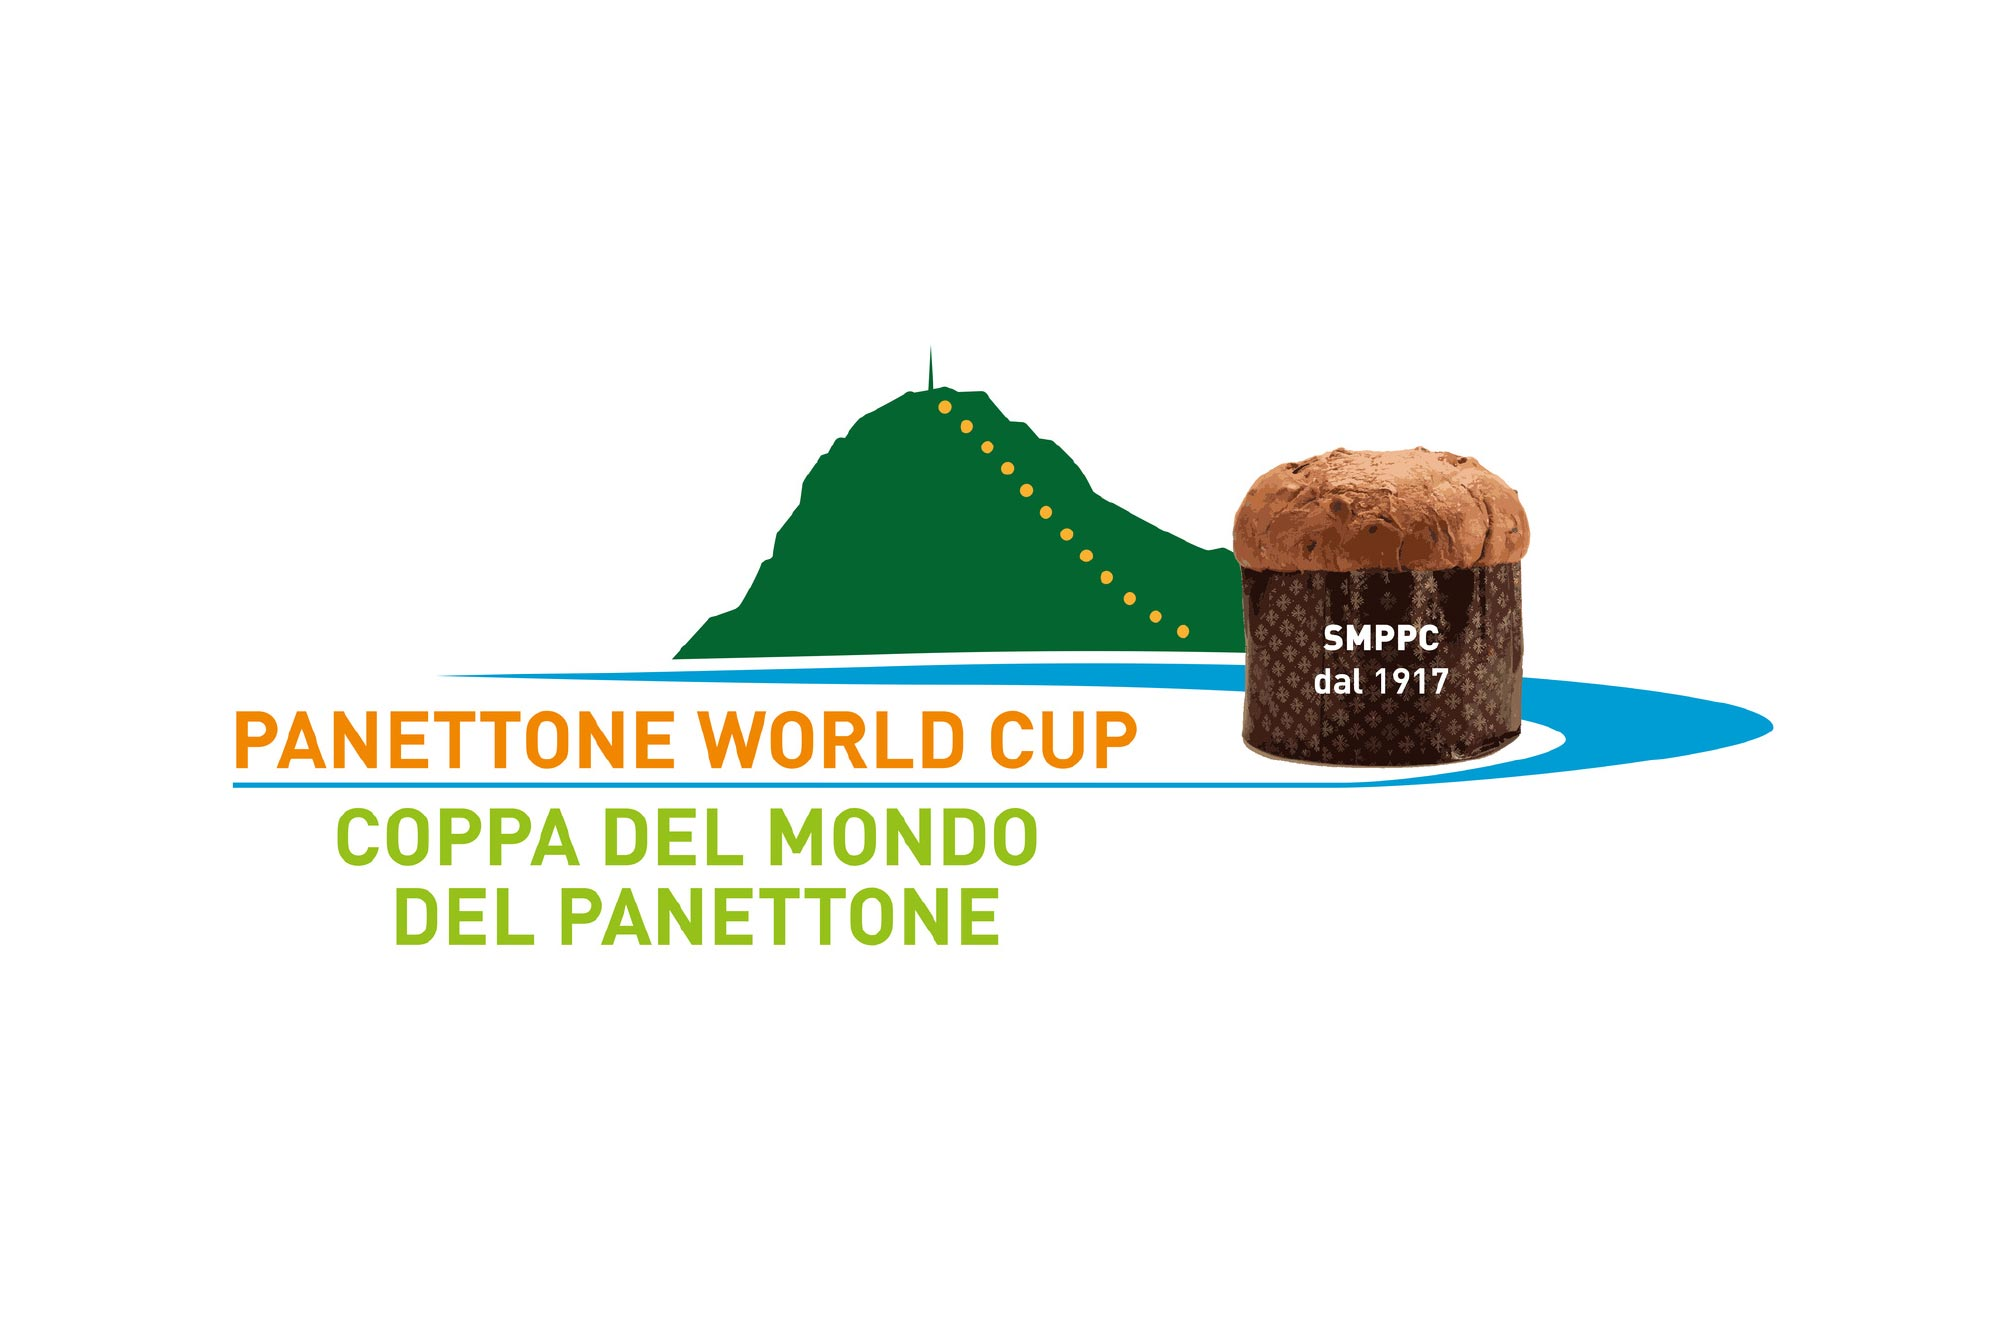 panettone world cup logo